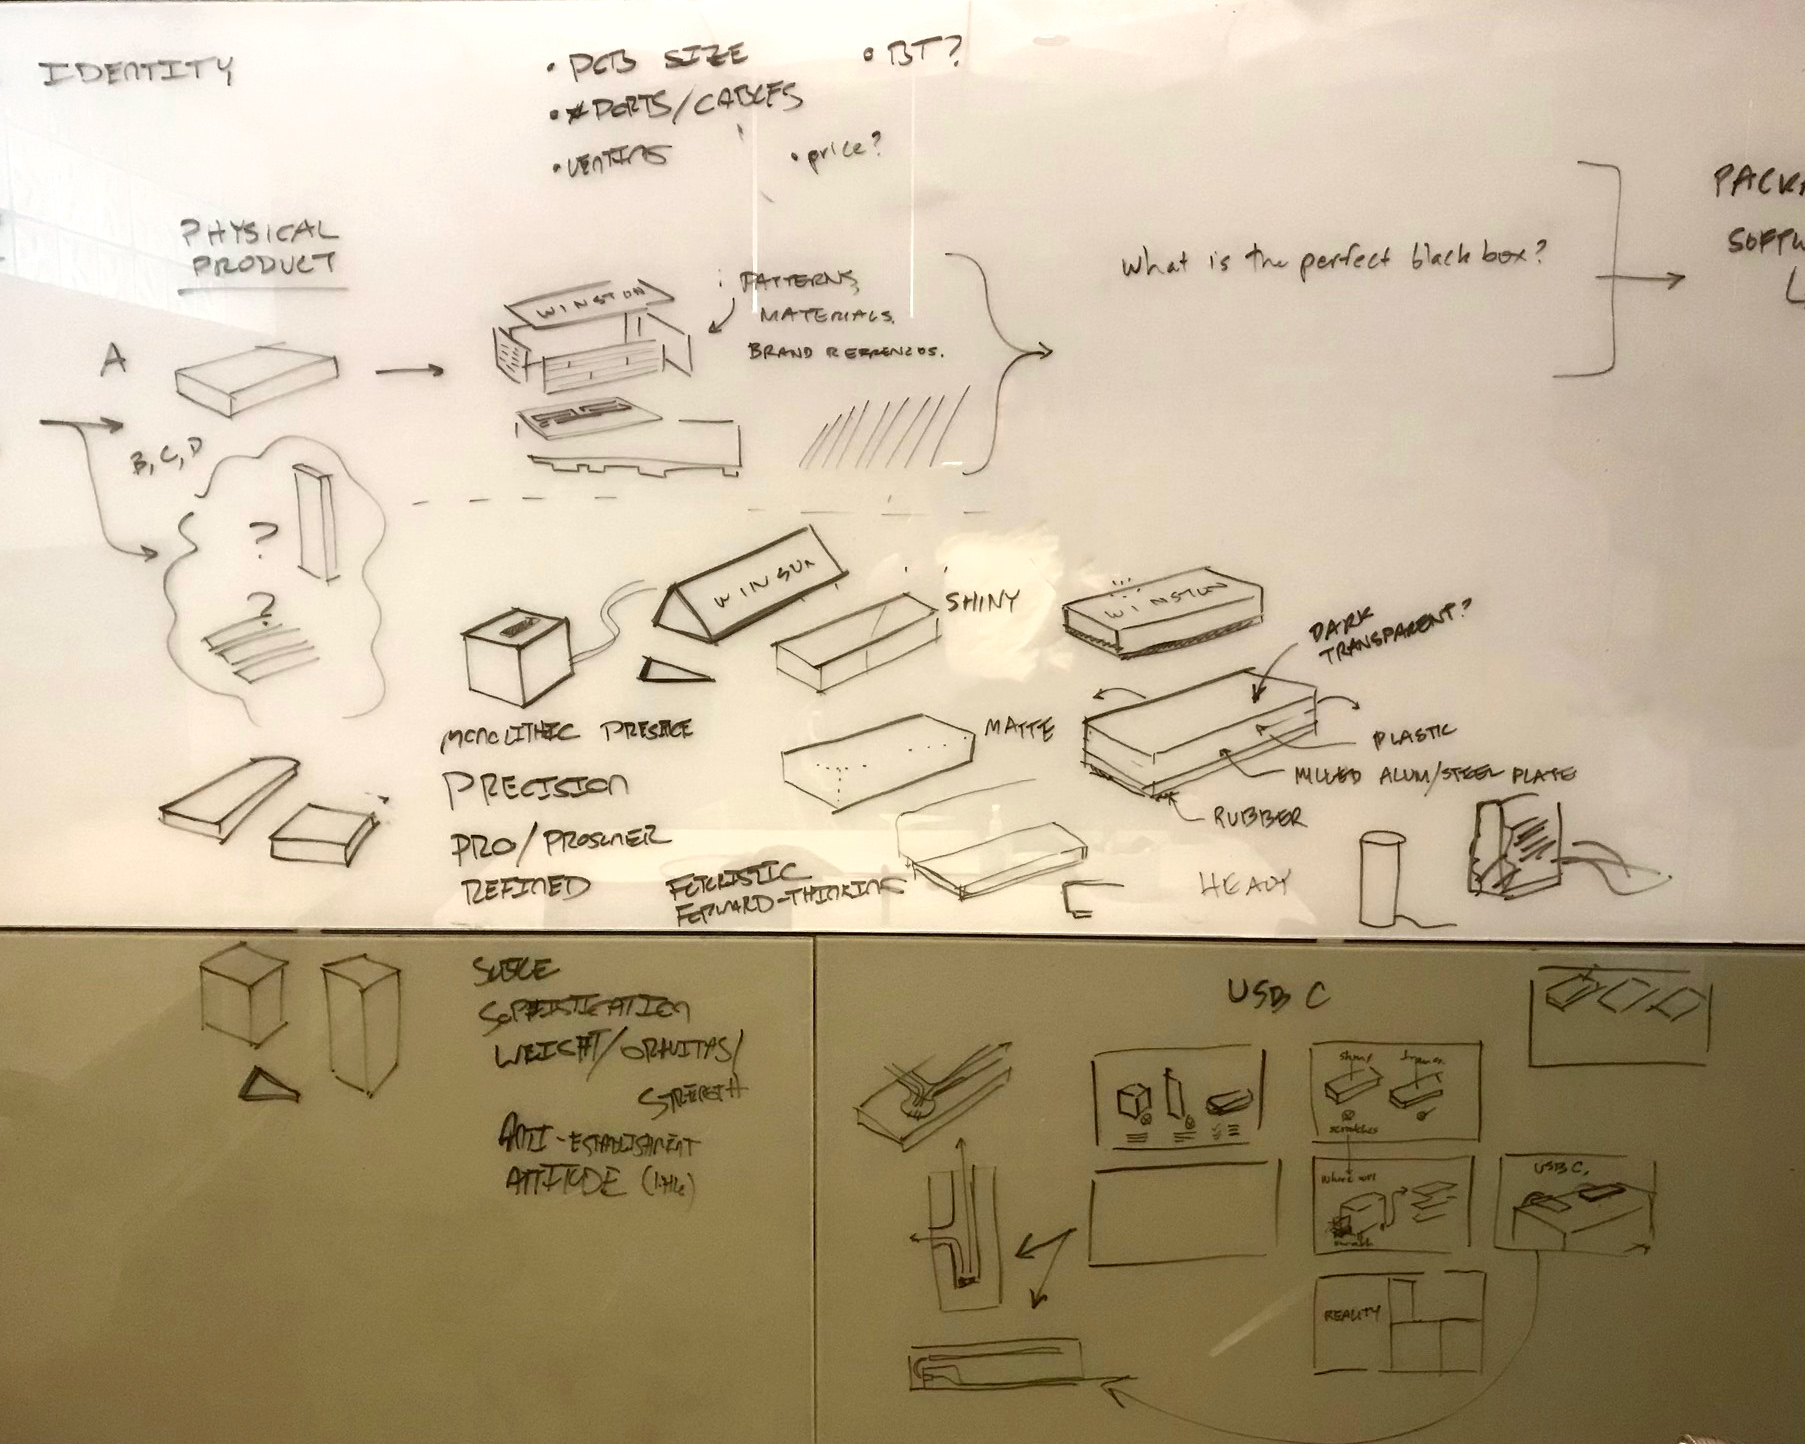 sketch thinking design thinking white board rapid develop process design marker idea post it note ideation industrial design outline arvid roach process organize